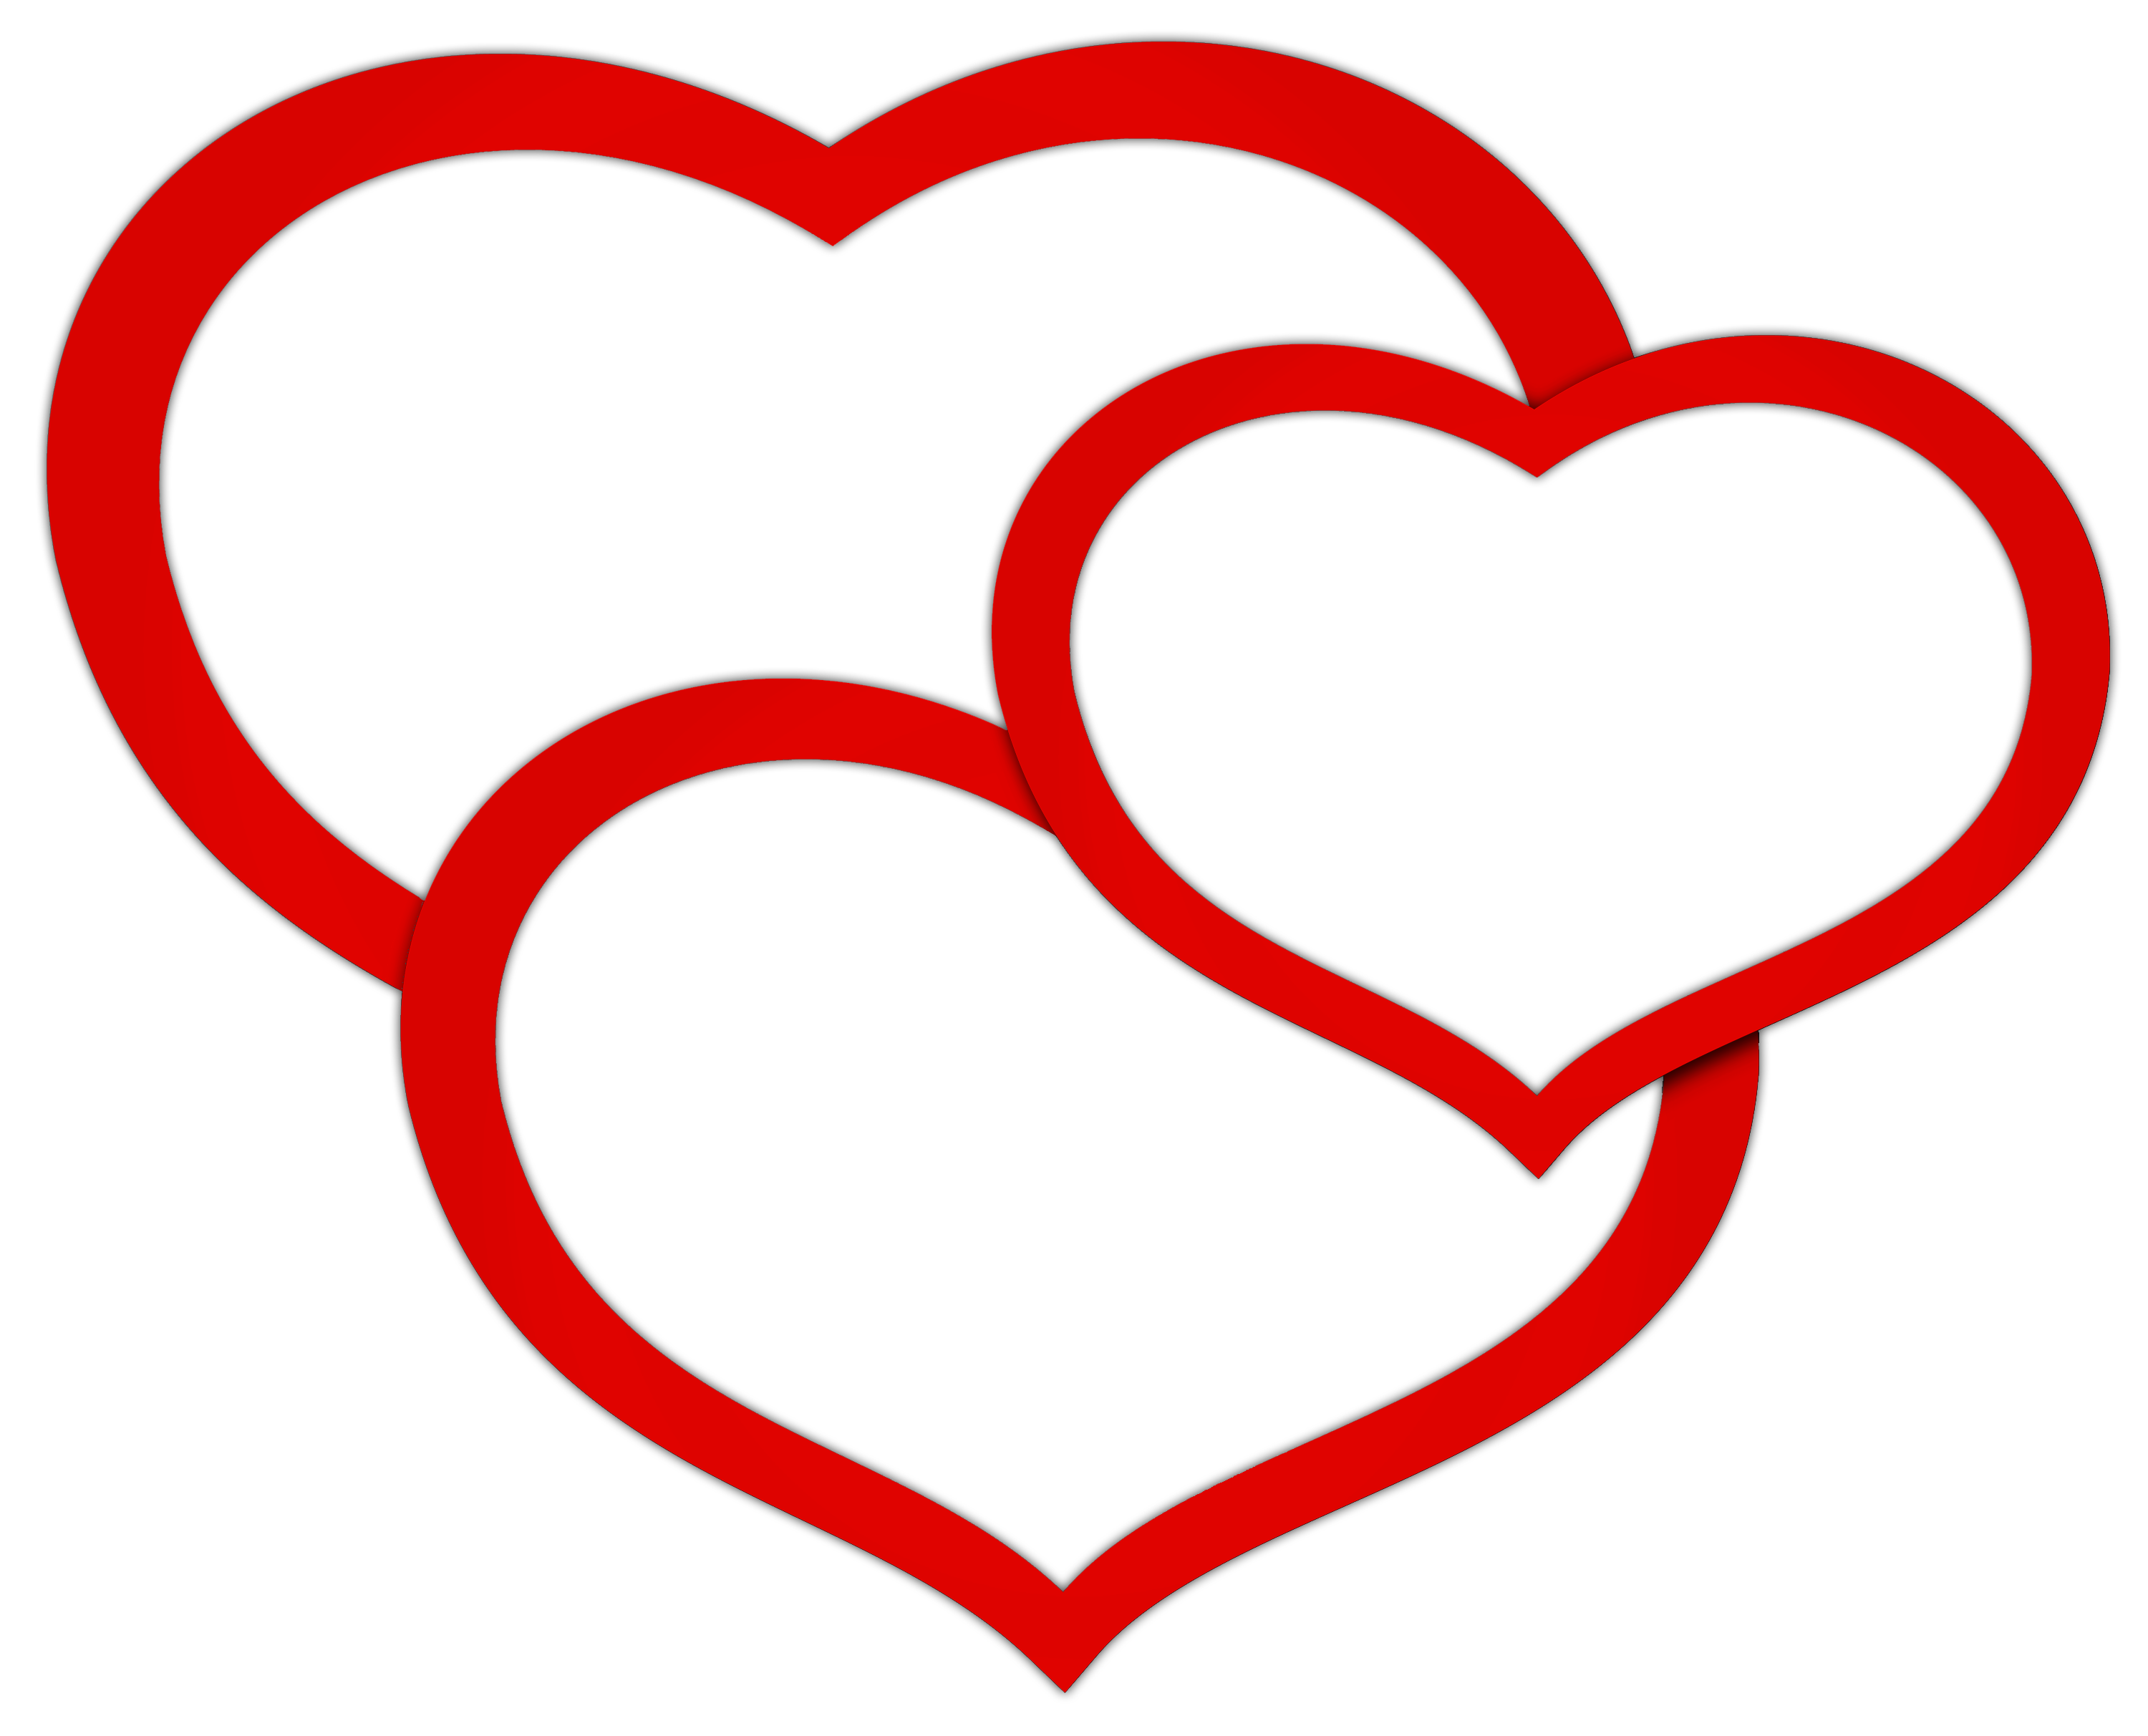 Transparent Red Triple Hearts PNG Clipart Picture Rotes